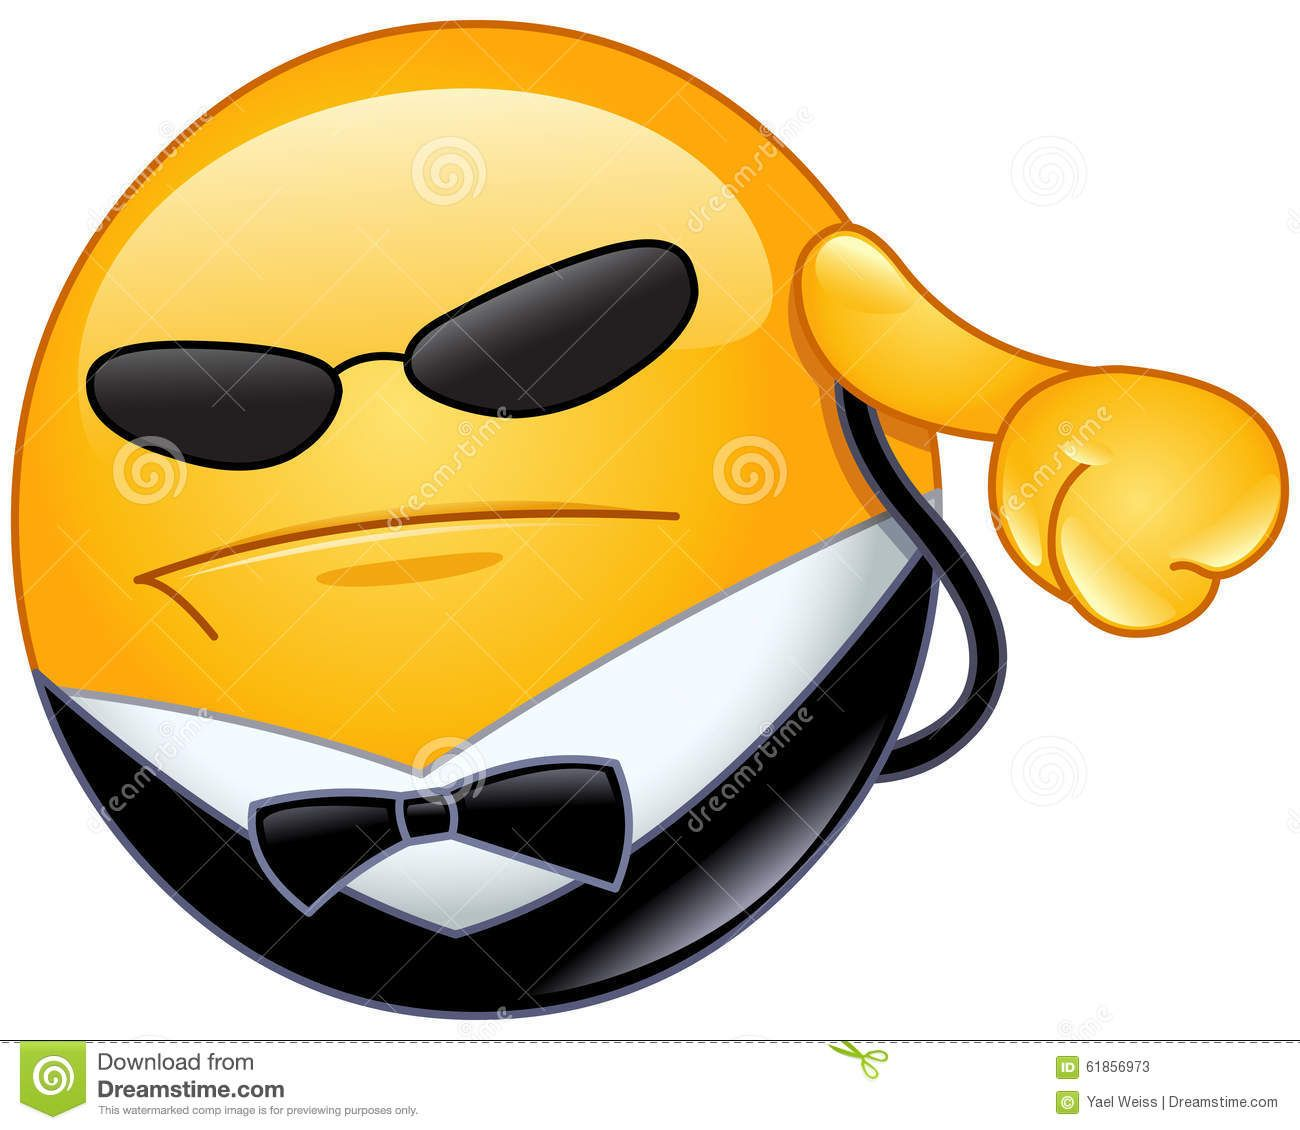 Emoticon da escolta ilustrao do vetor imagem 61856973 undercover security copy send share send in a message share on a timeline or copy and paste in your comments buycottarizona